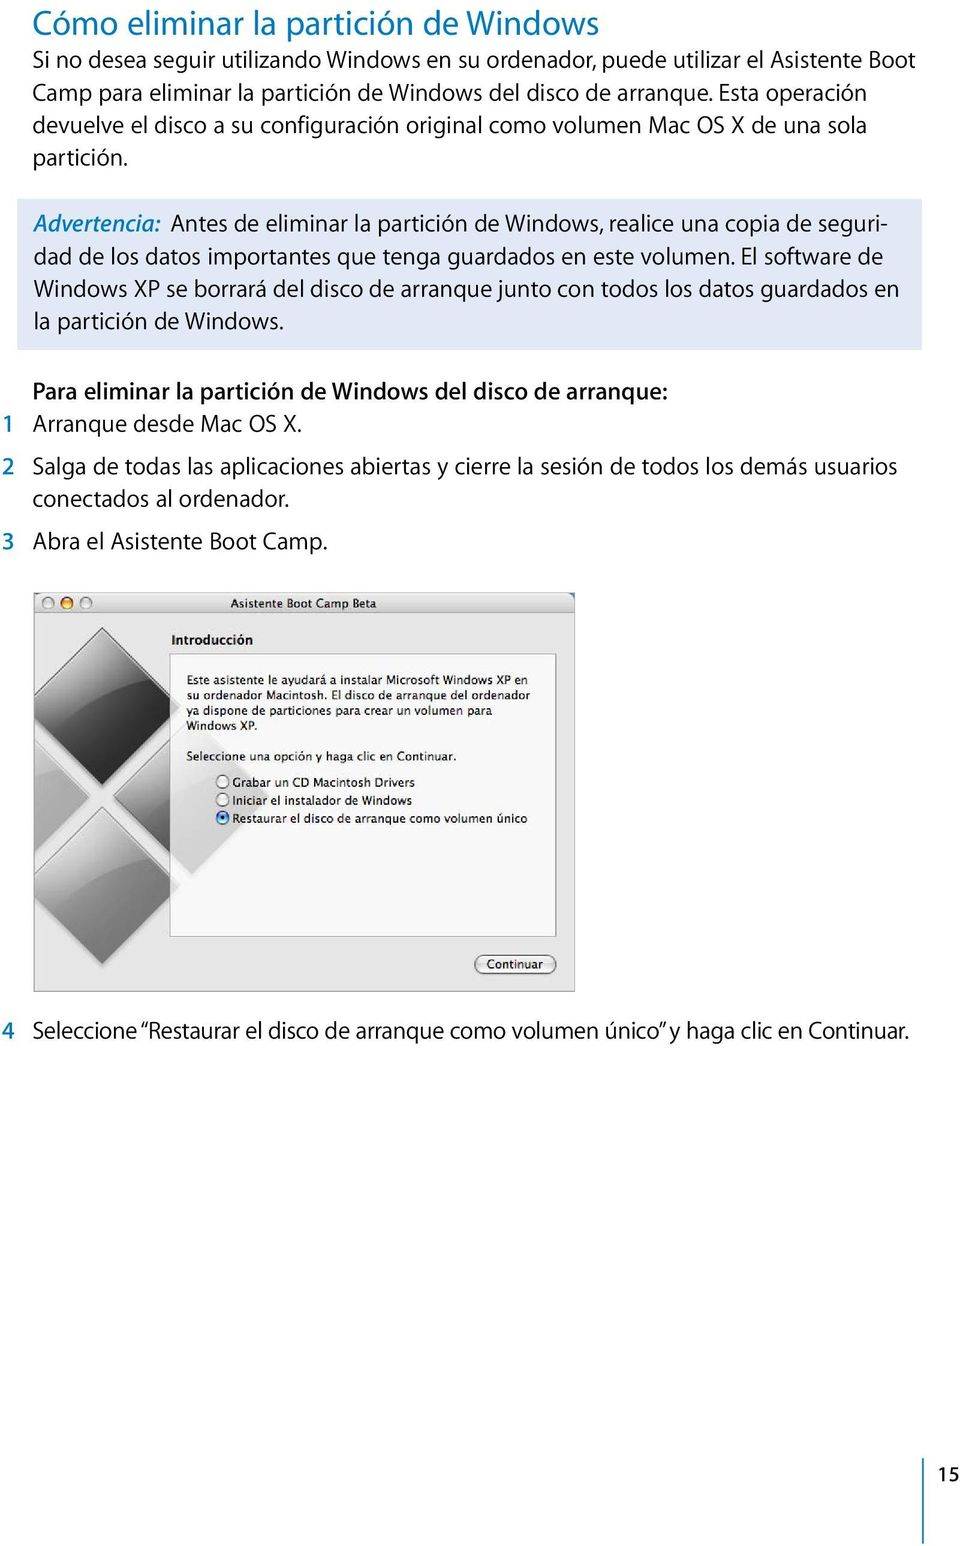 Advertencia: Antes de eliminar la partición de Windows, realice una copia de seguridad de los datos importantes que tenga guardados en este volumen.